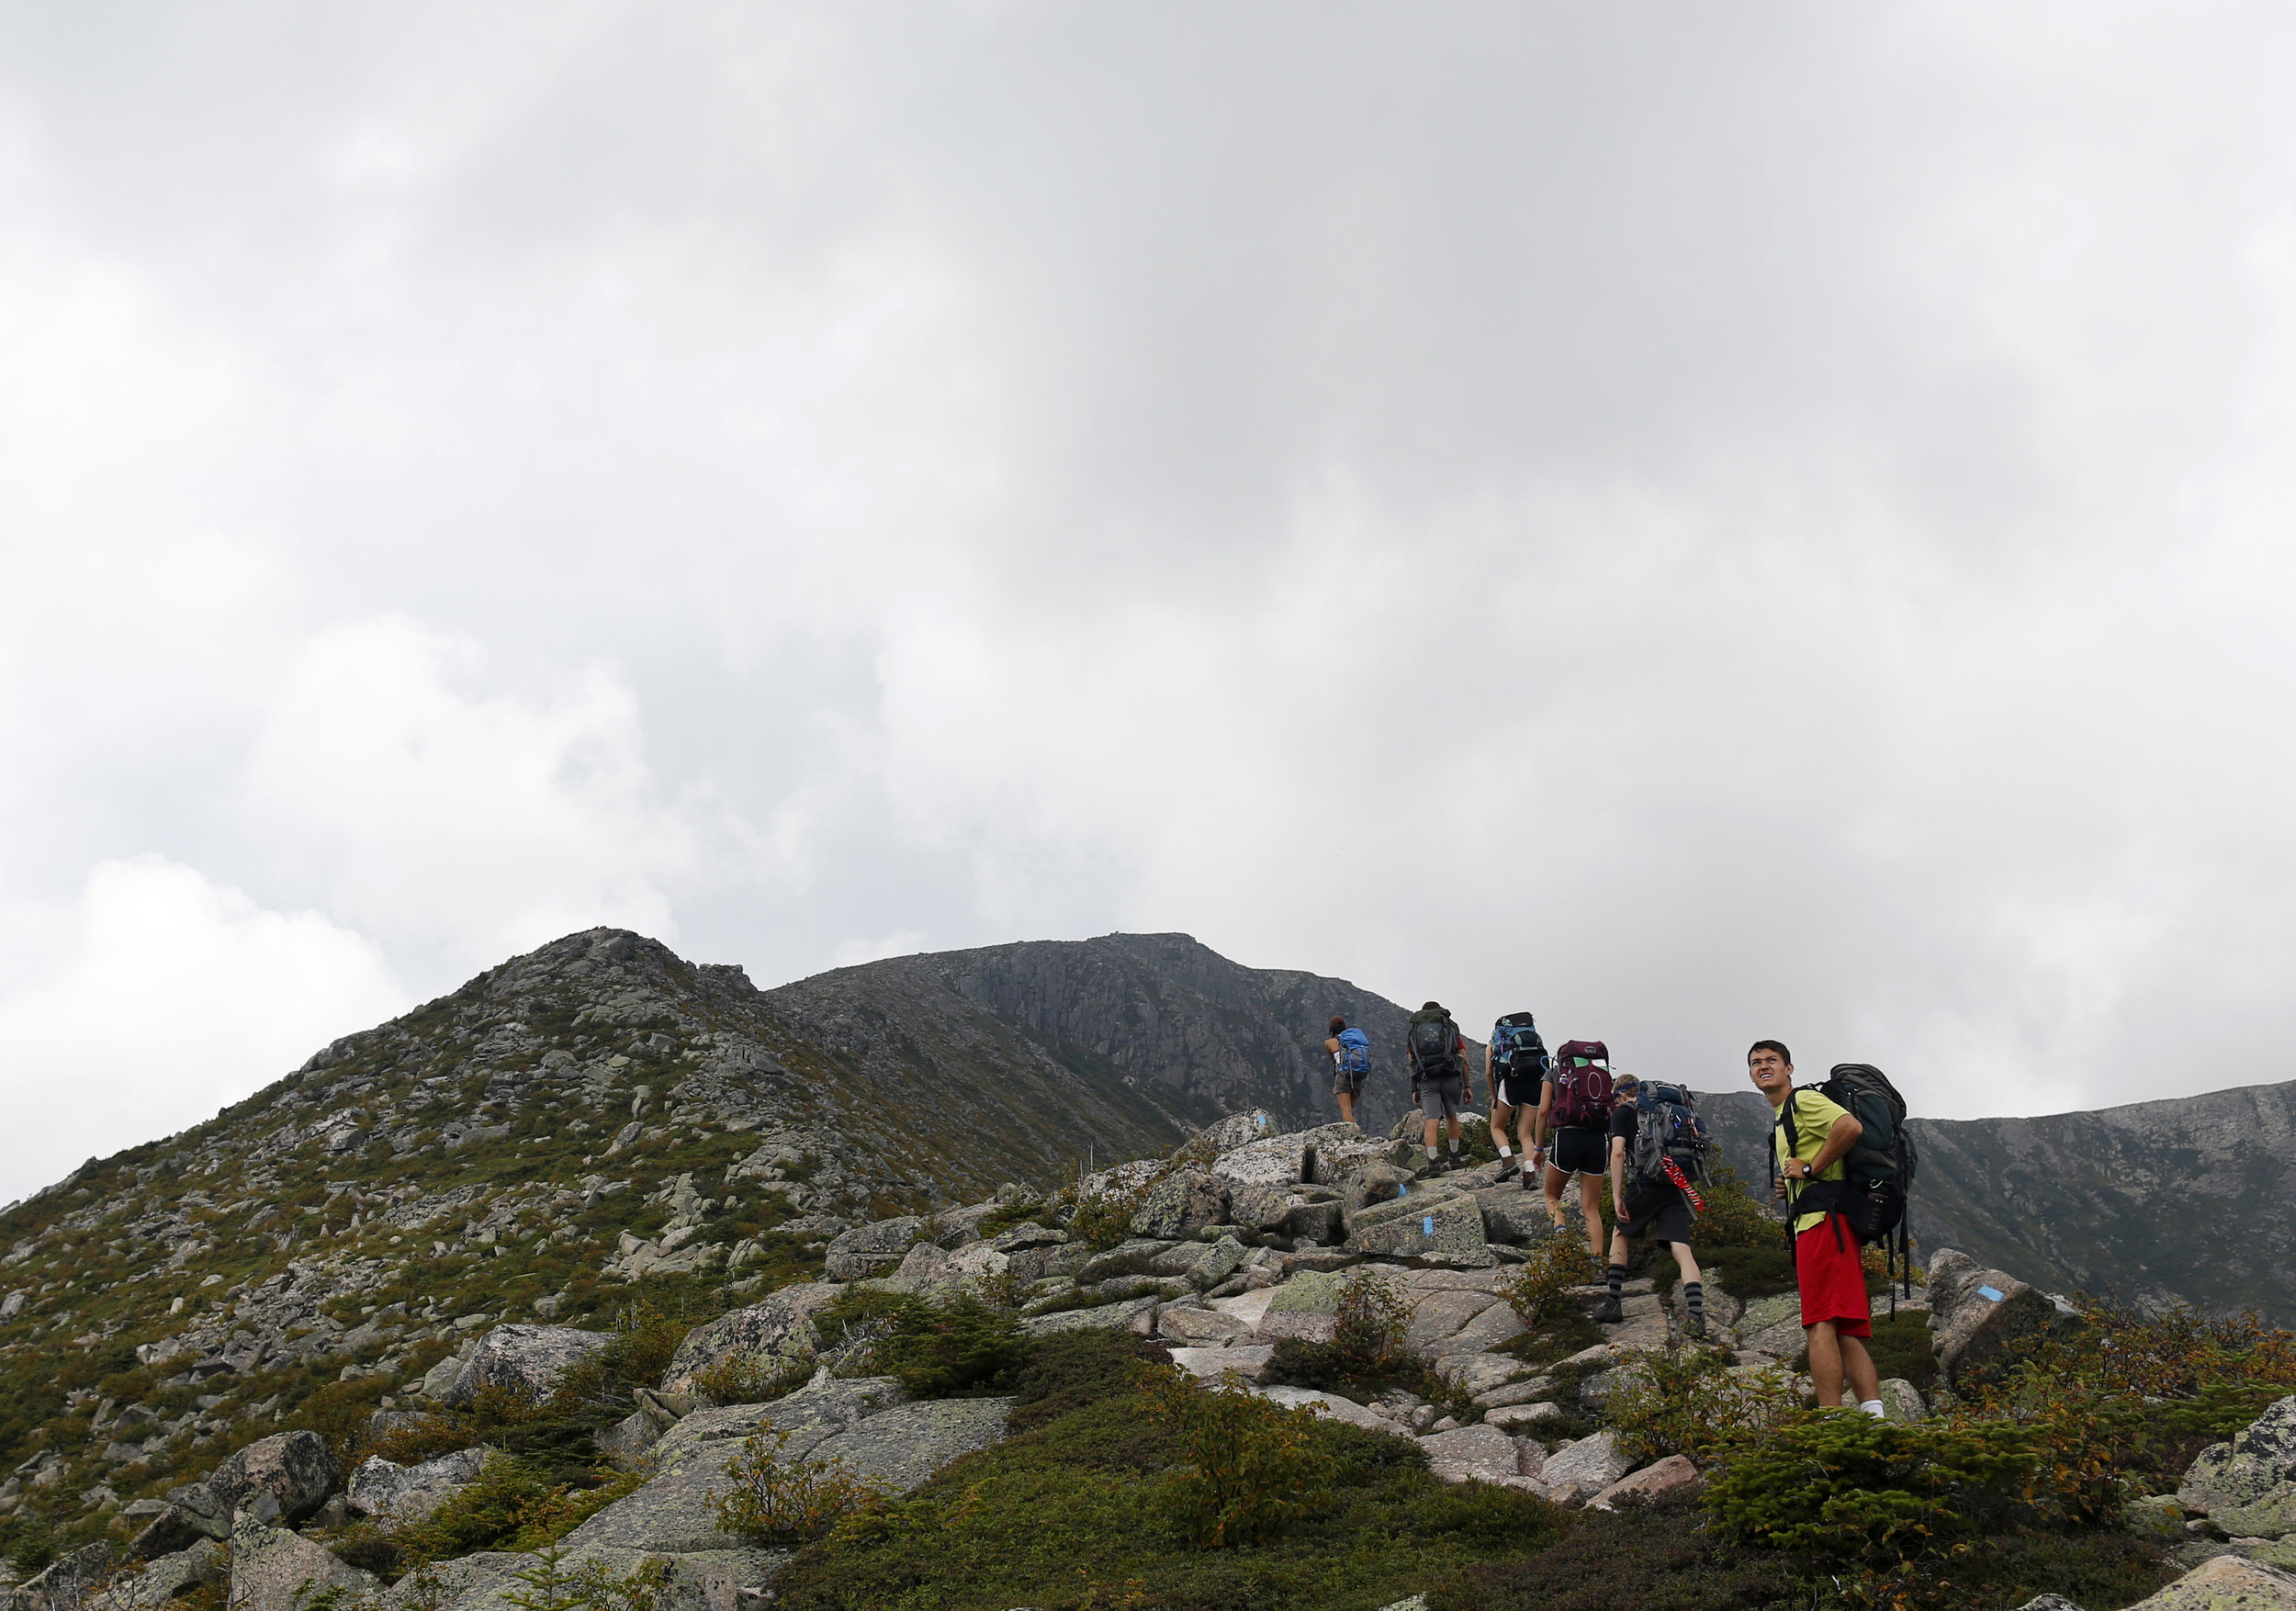 Bobby Lankin, a junior at Bates and one of the group's leaders, keeps an eye on approaching thunderstorms as the group emerges above the tree line on Hamlin Peak. They were soon forced to turn around to avoid being caught in the storm without cover.